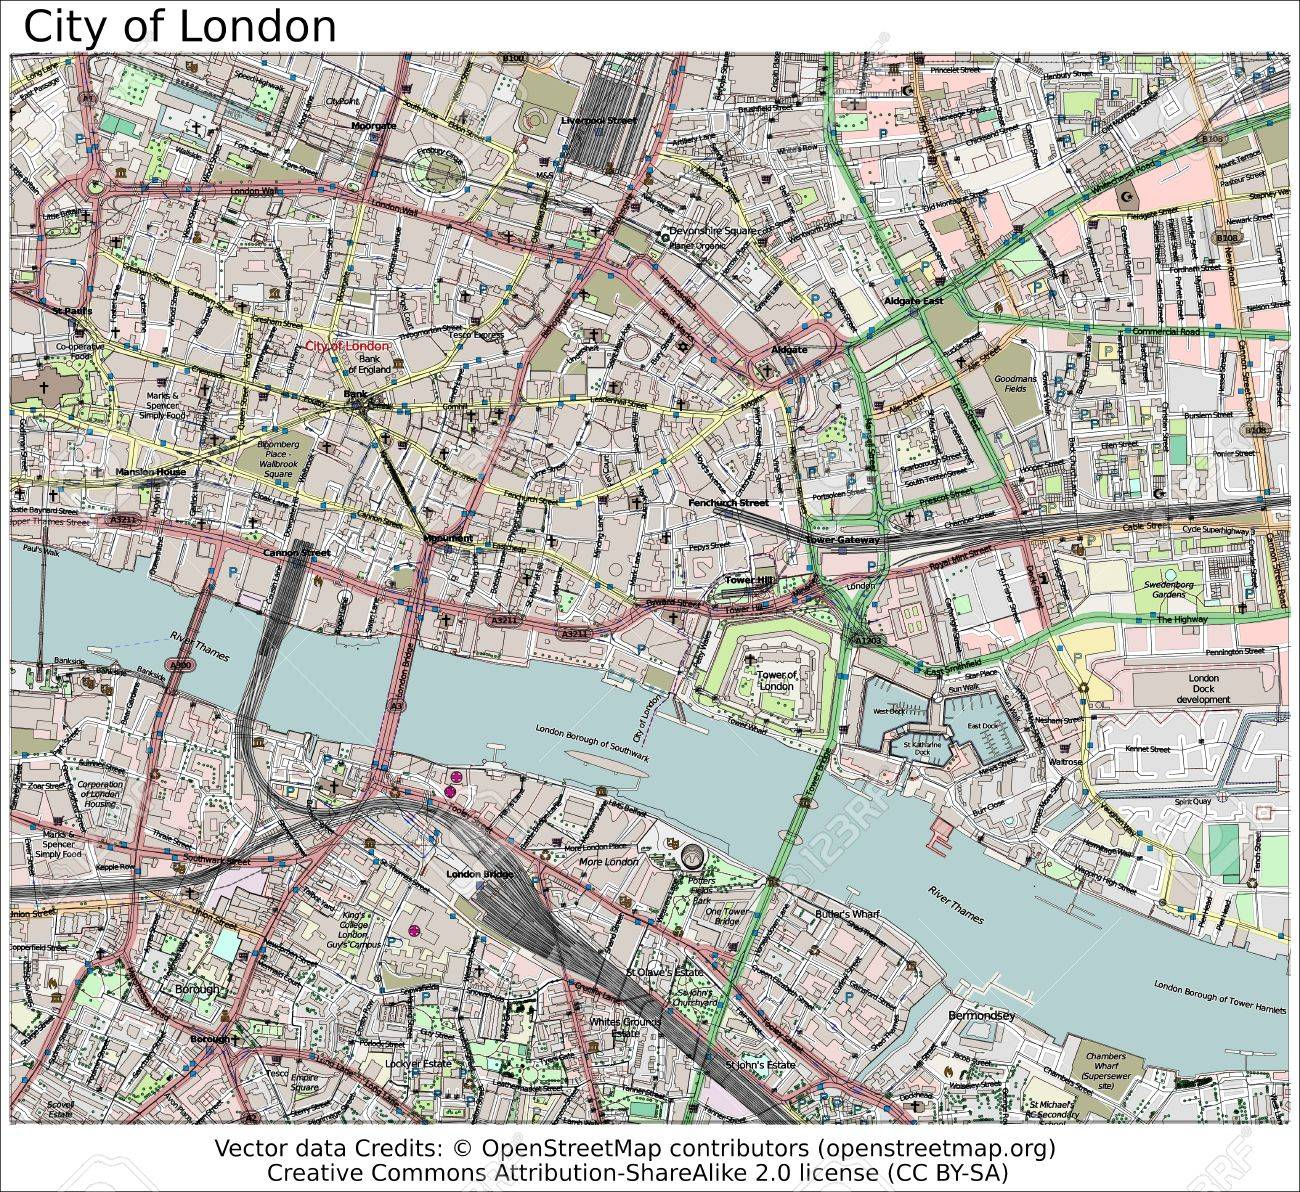 London And Surrounding Areas Map.City Of London Area Map Aerial View